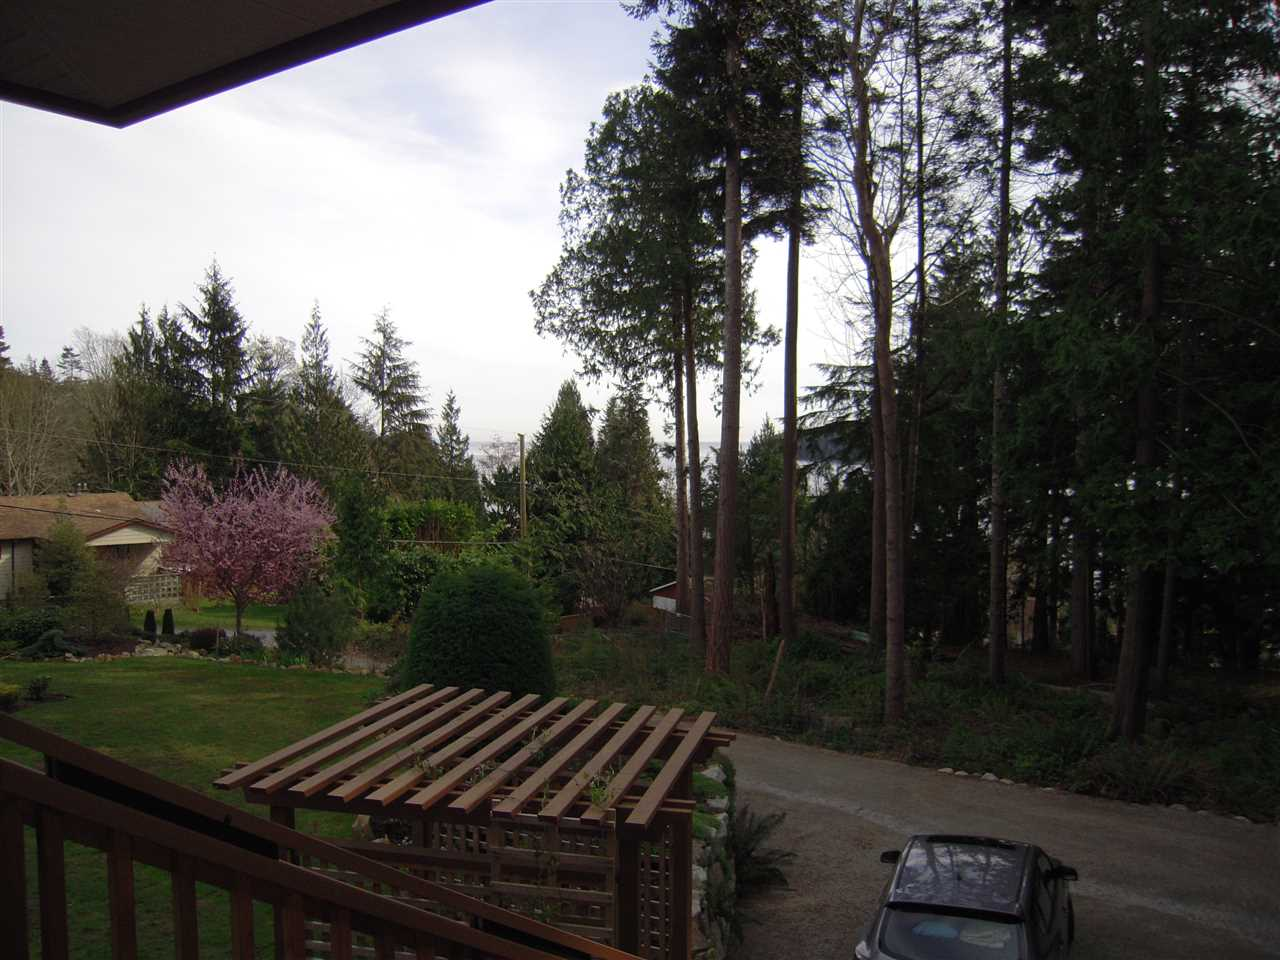 Photo 5: Photos: 5447 WAKEFIELD Road in Sechelt: Sechelt District House for sale (Sunshine Coast)  : MLS® # R2047962